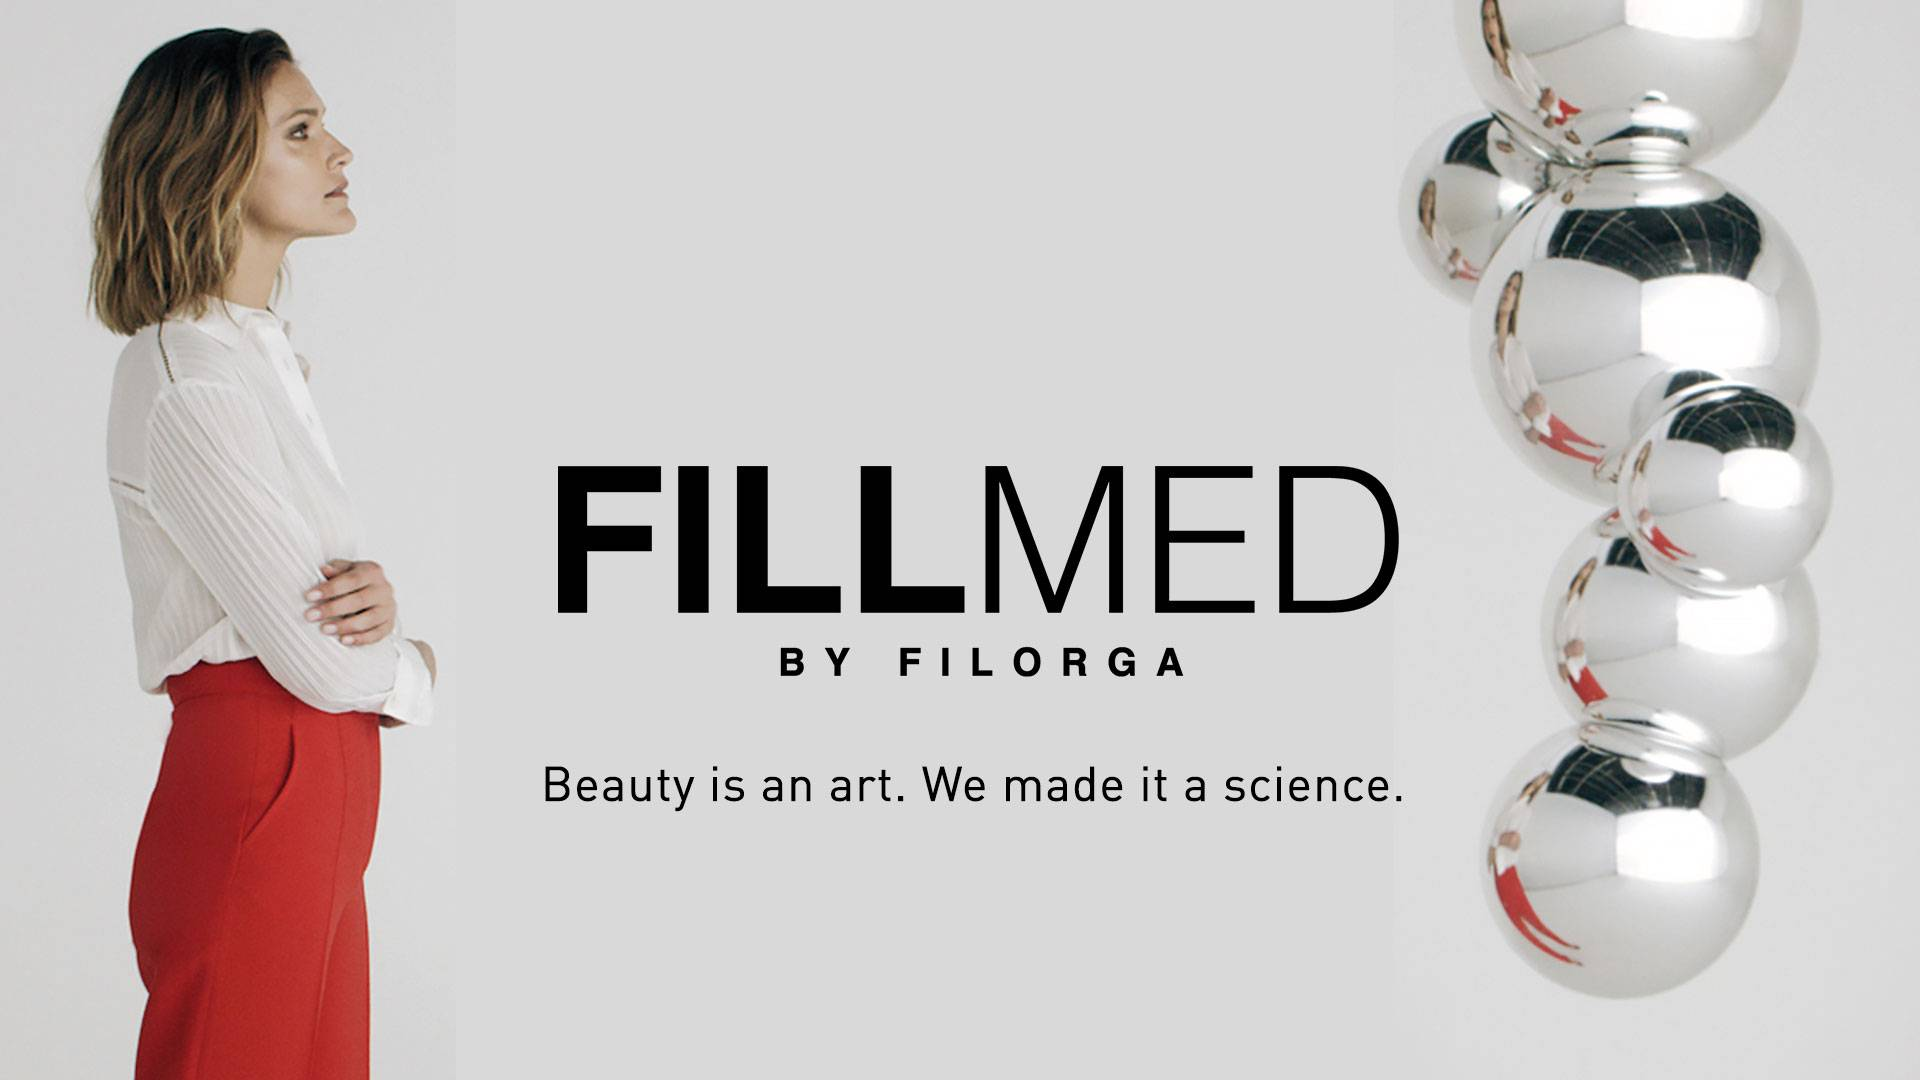 fillmed by filorga romania